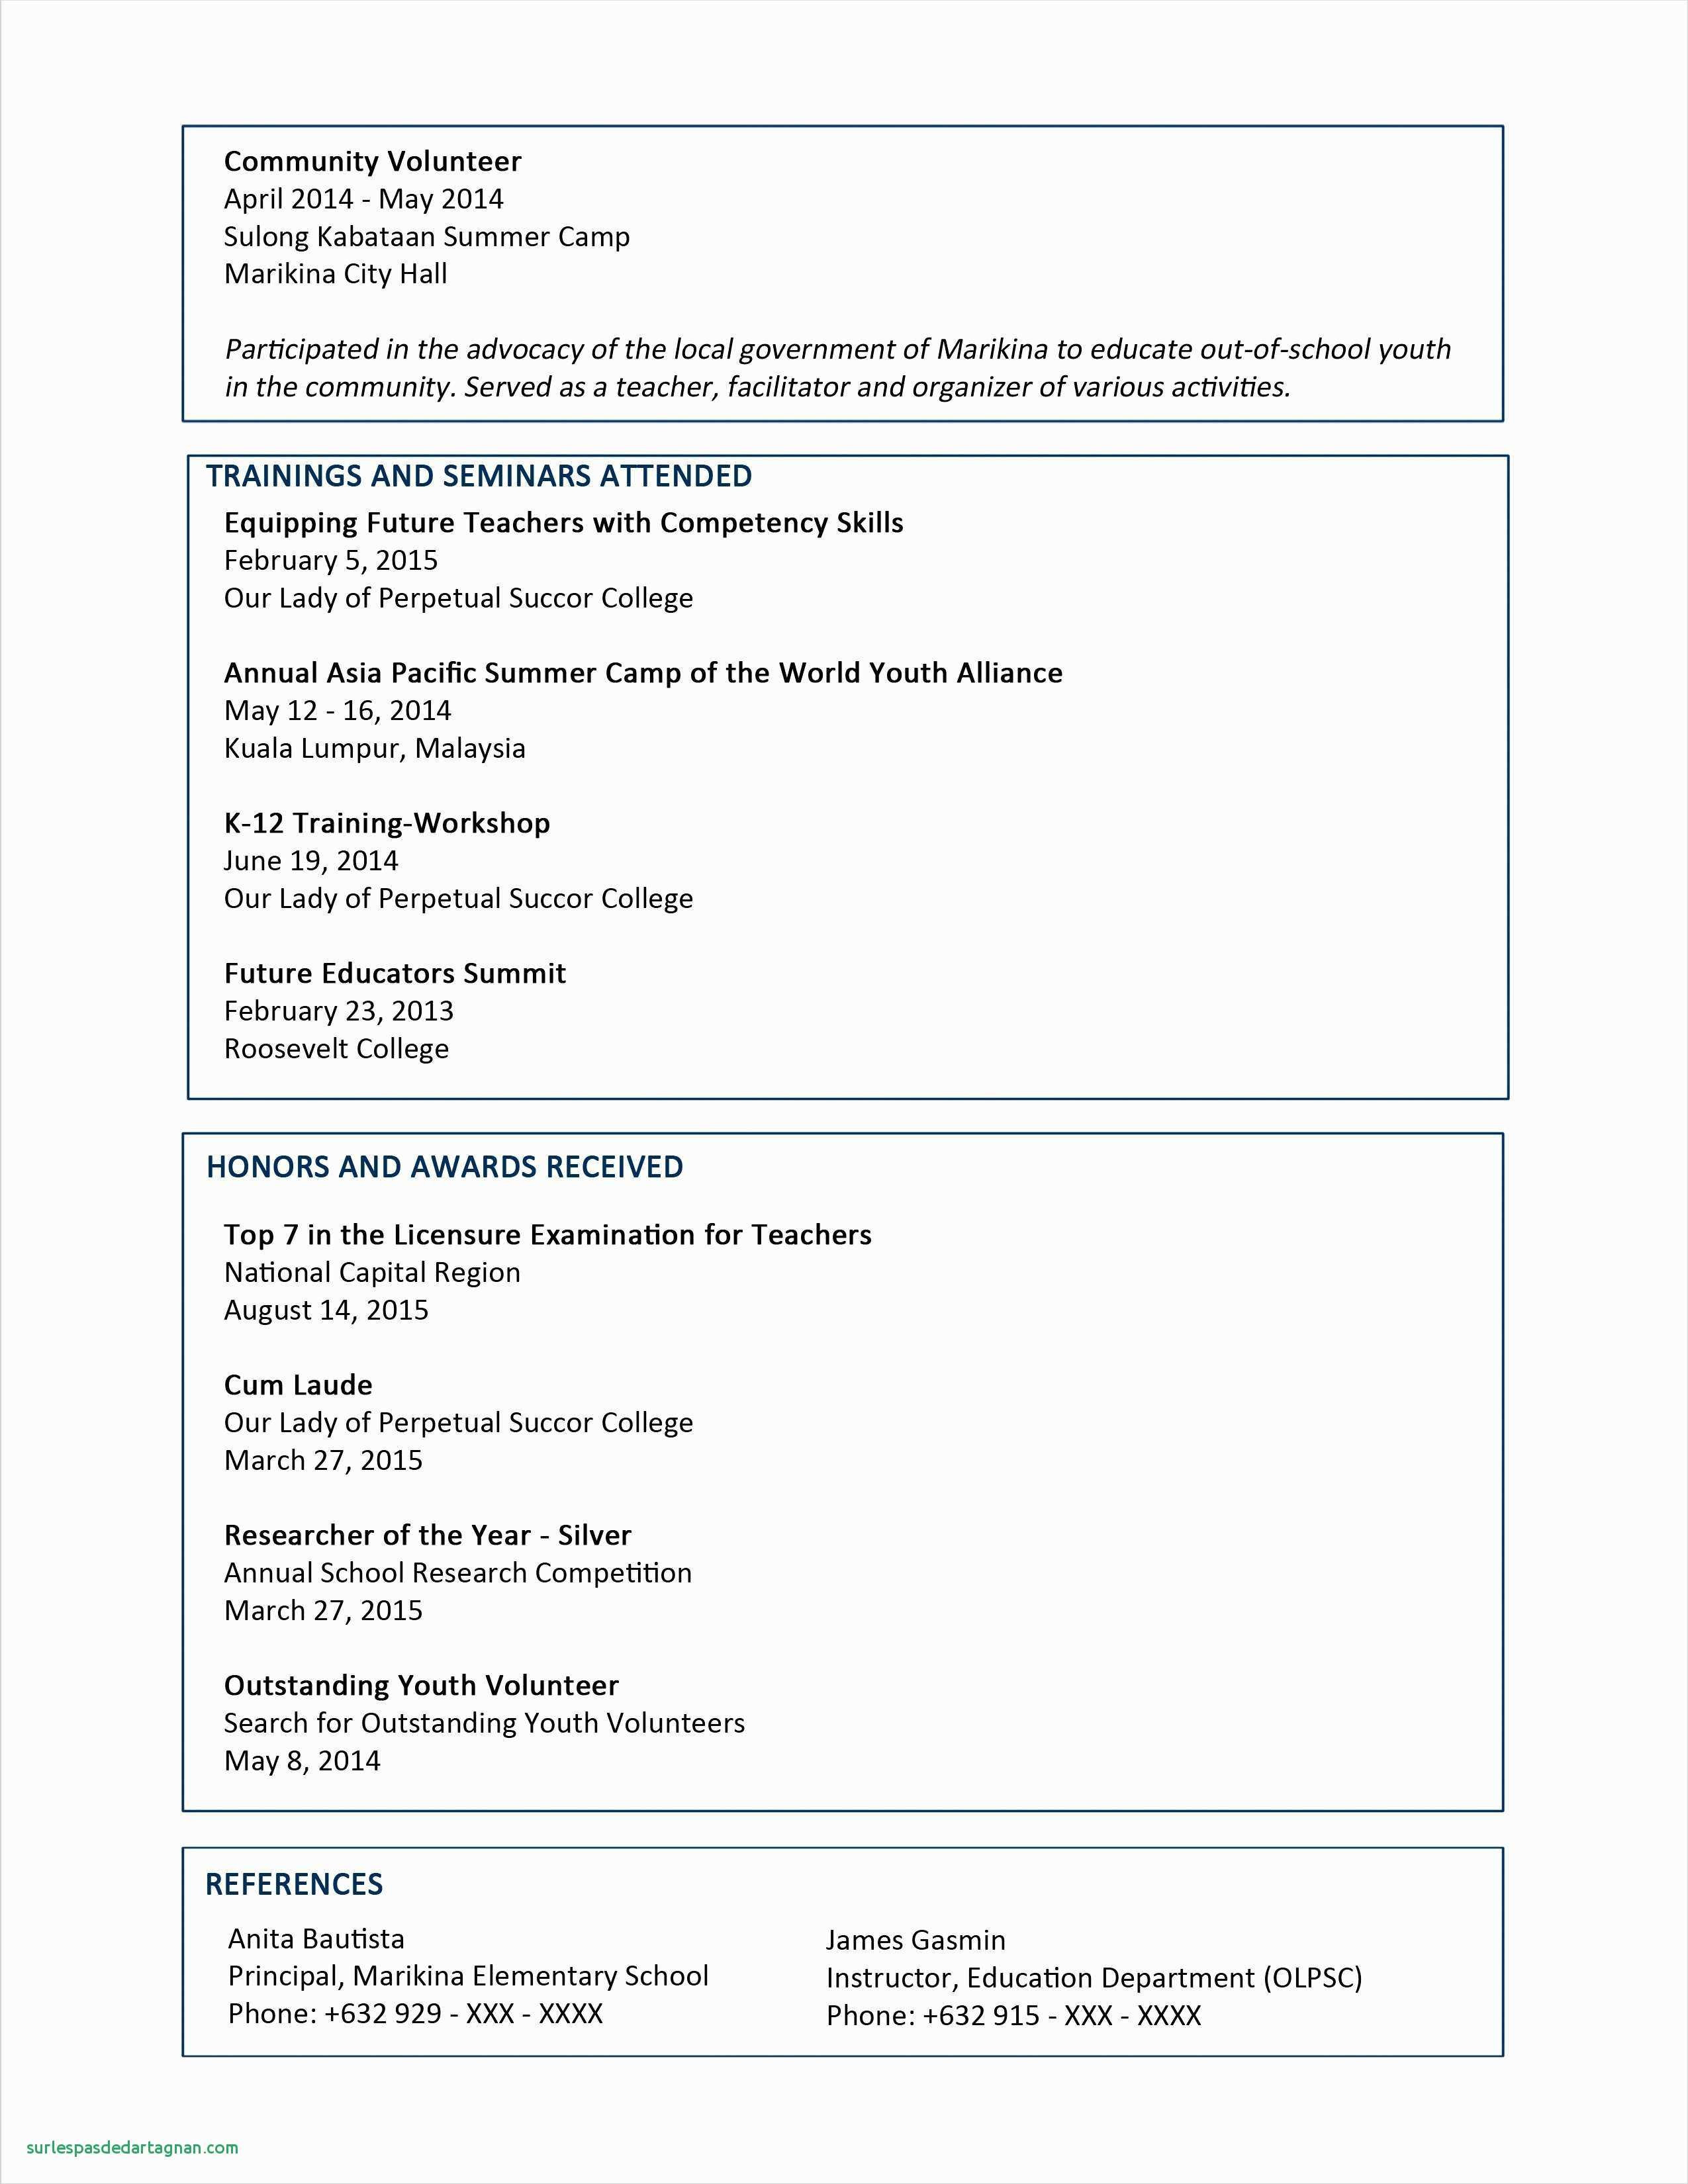 Resume Titles Examples that Stand Out - Free Resume Templates that Stand Out Inspirational Resume for